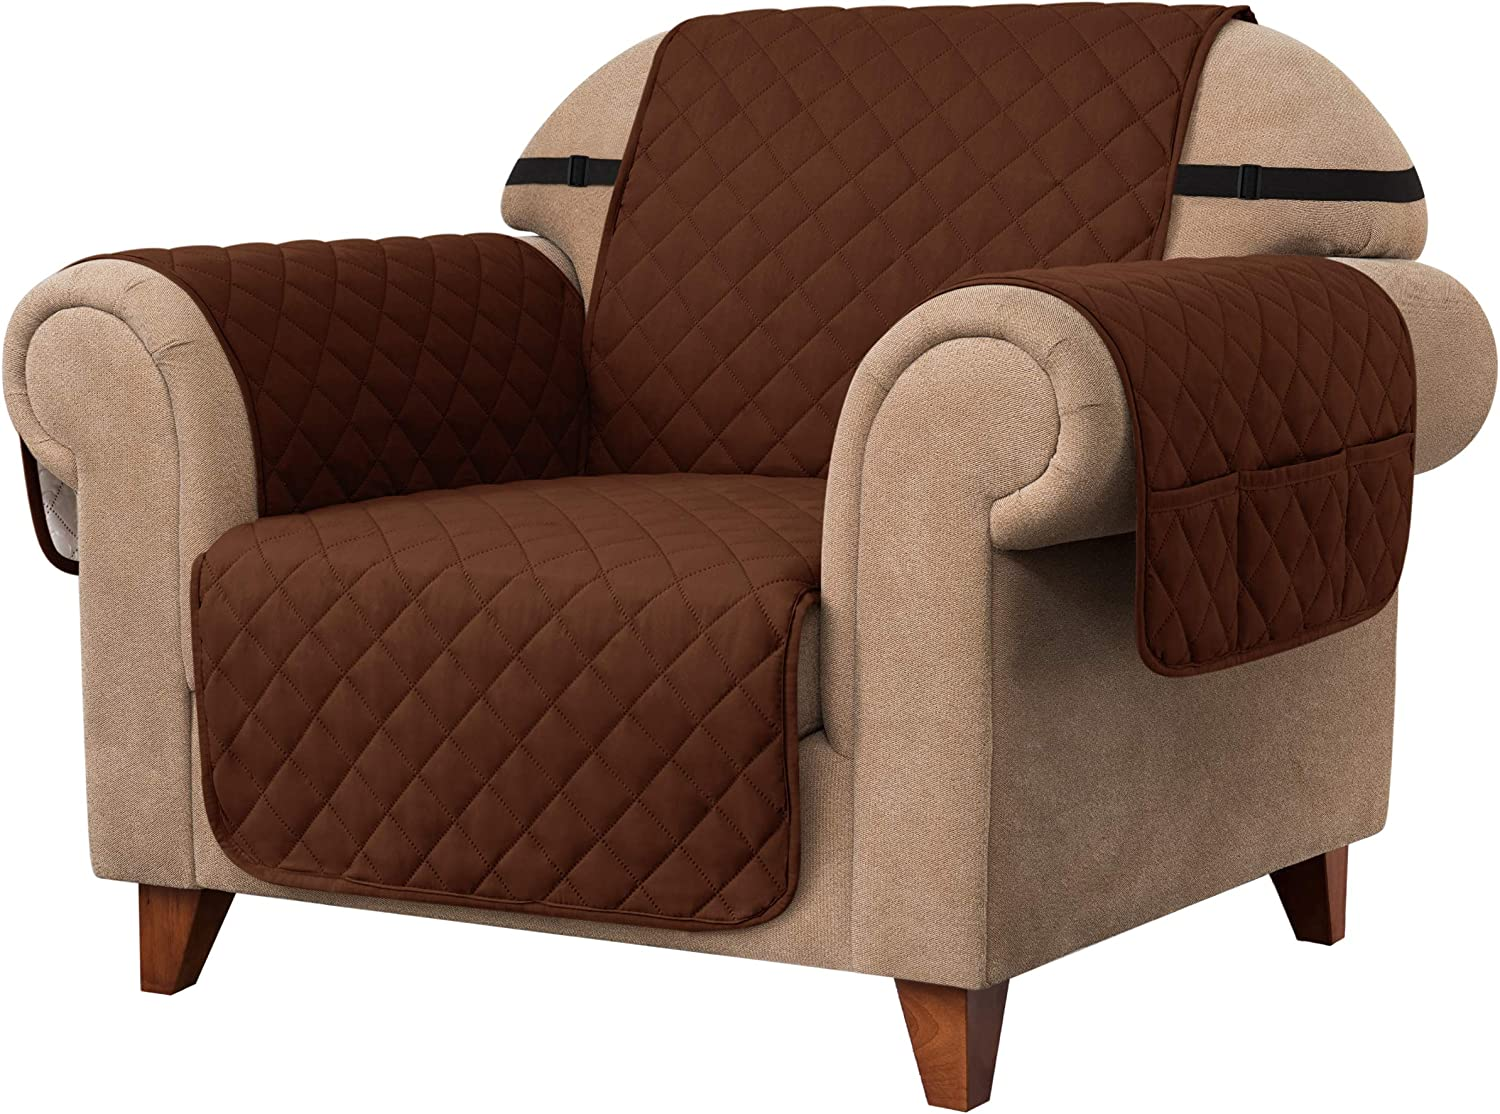 Ouka Reversible Sofa Slipcover, Fabric 1-Piece Furniture Protector with Elastic Straps,Non-Slip Sofa Cover for Pets and Kids. (Chair, Chocolate)